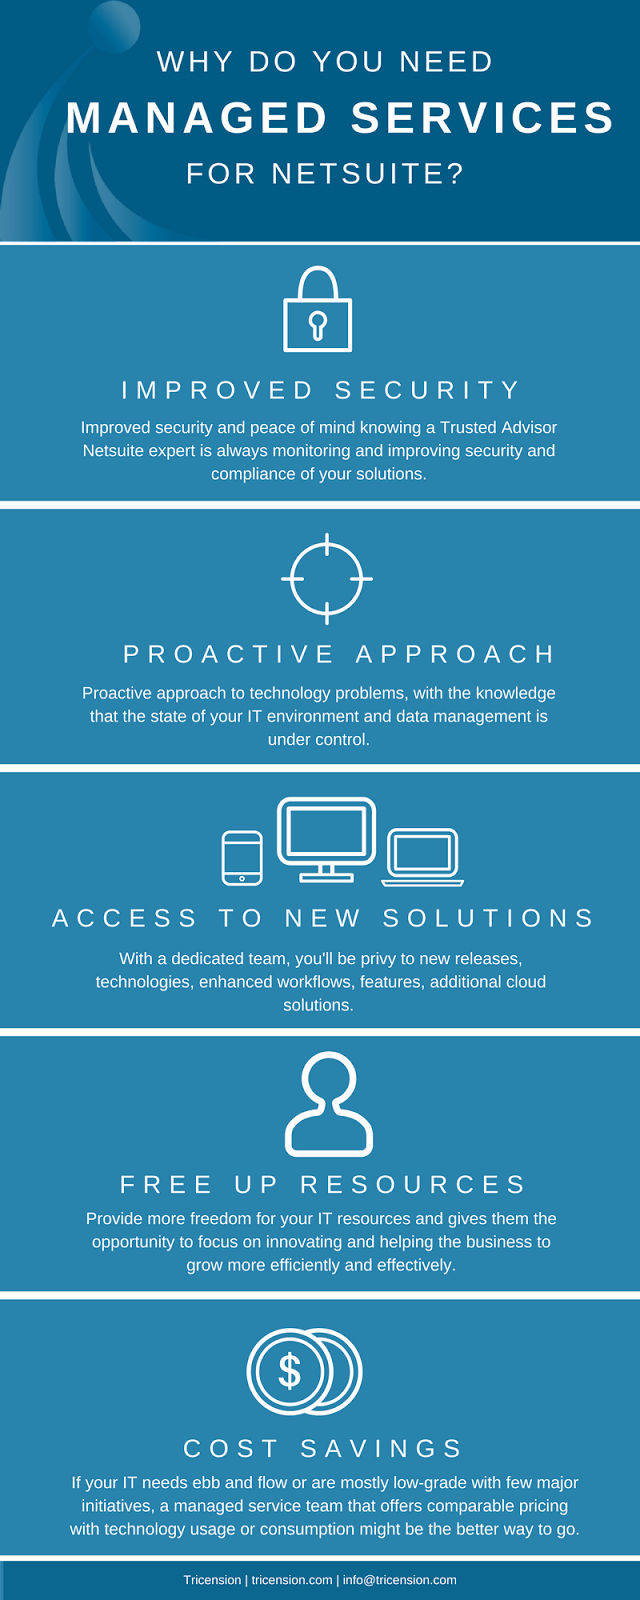 Tricension Managed Services